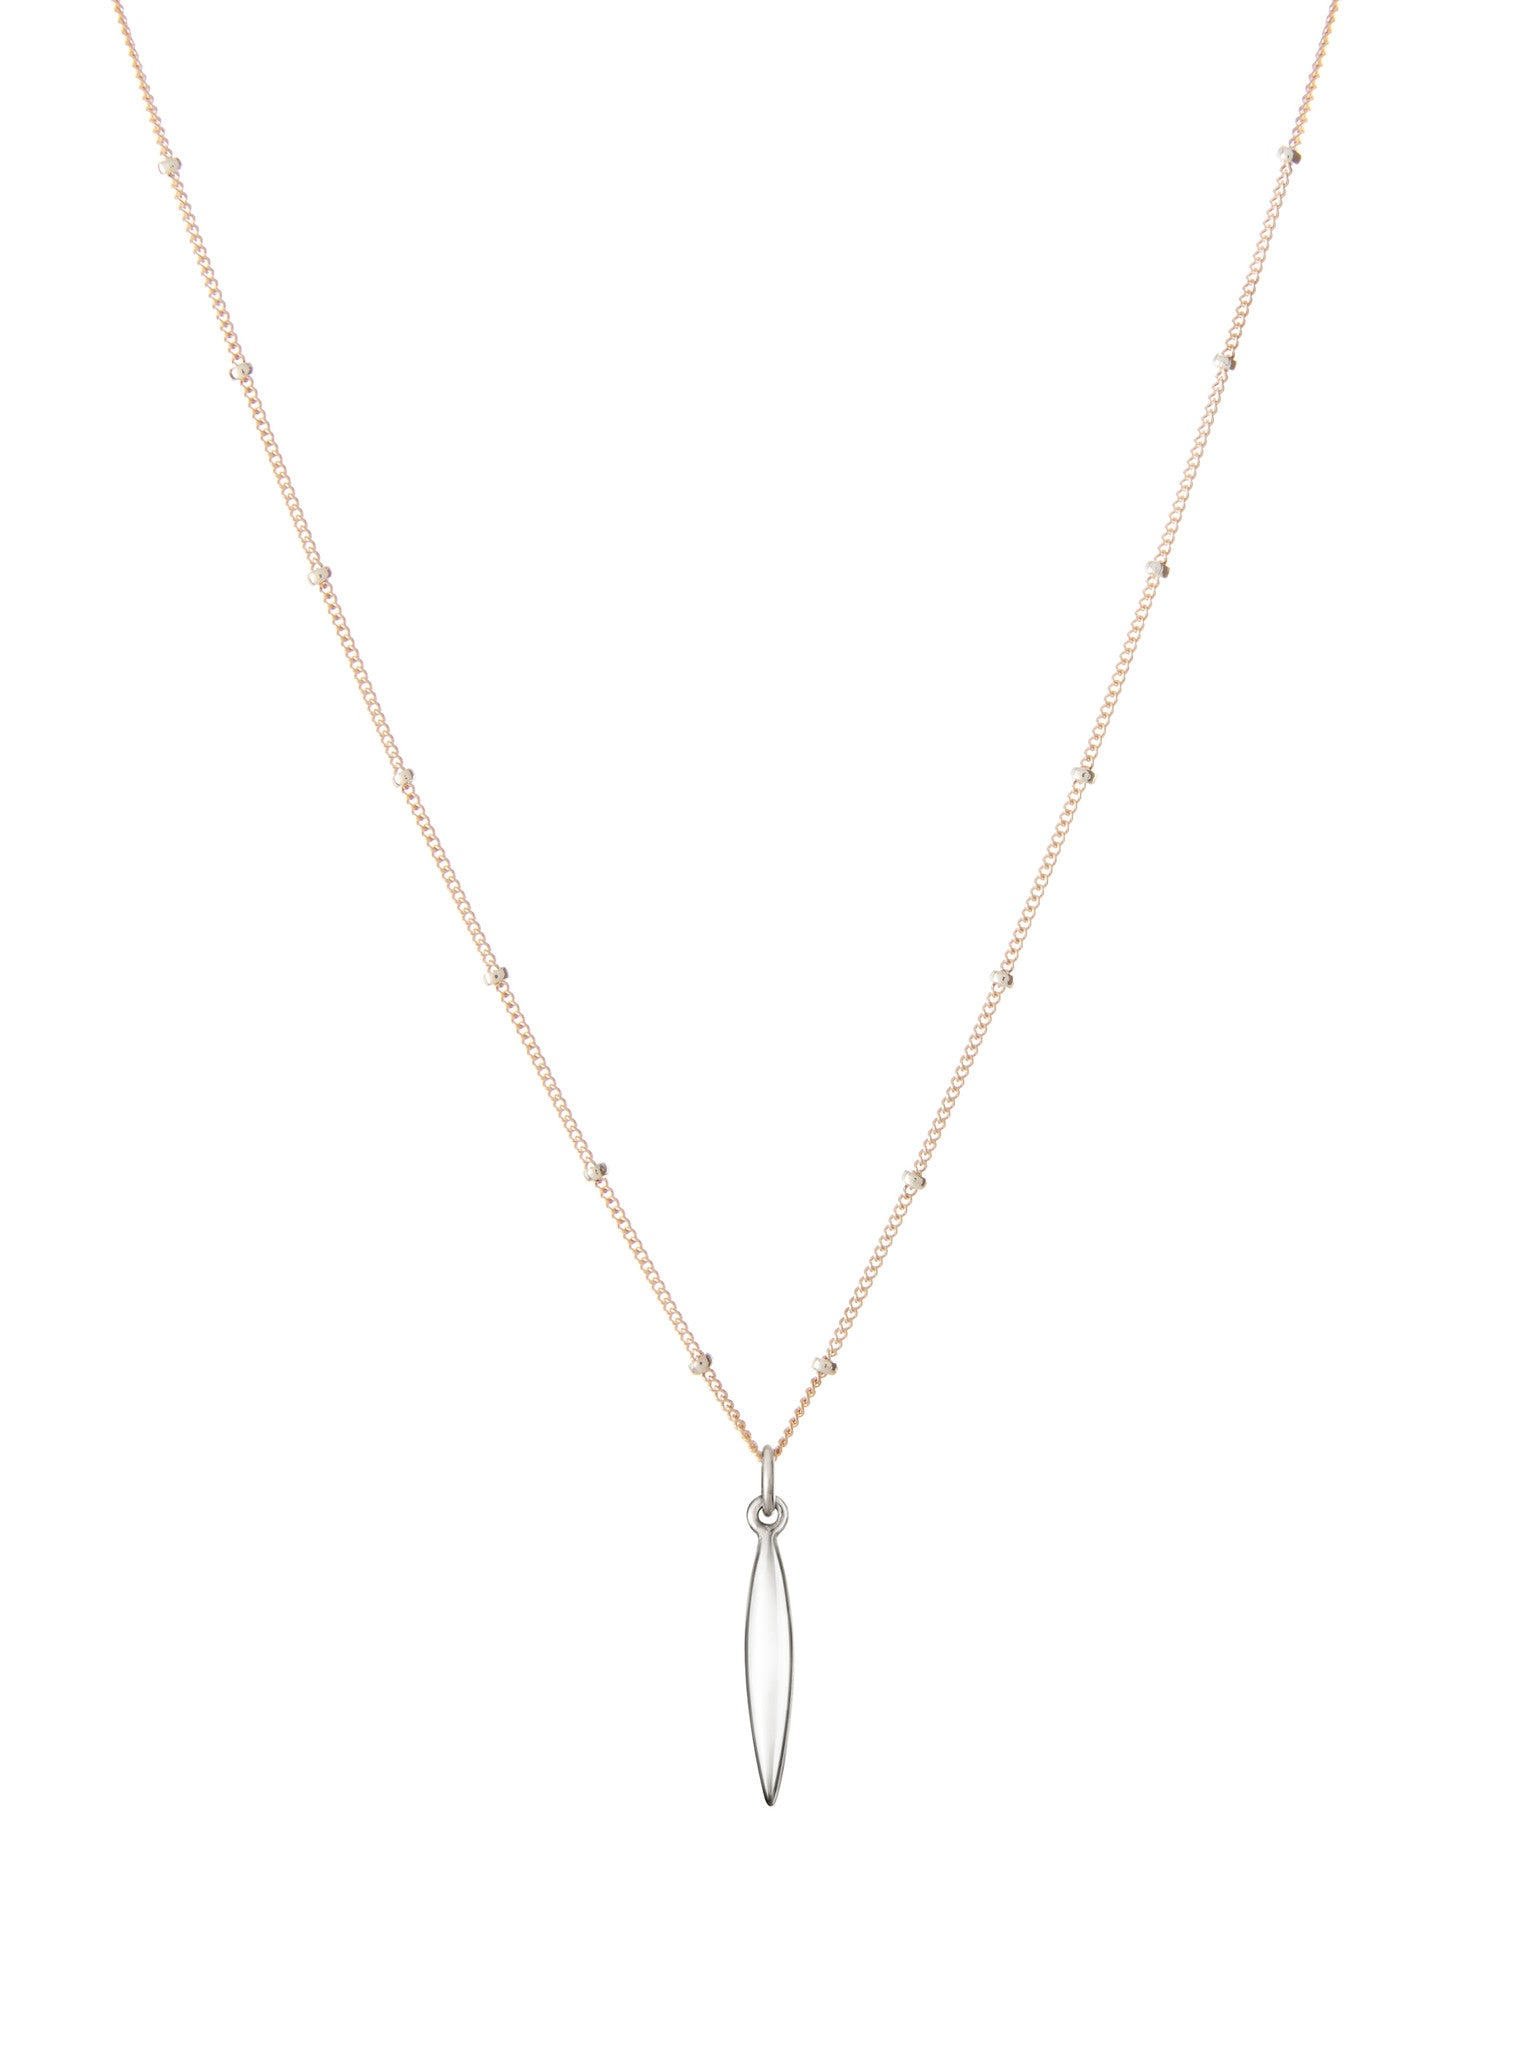 Serena rose gold necklace